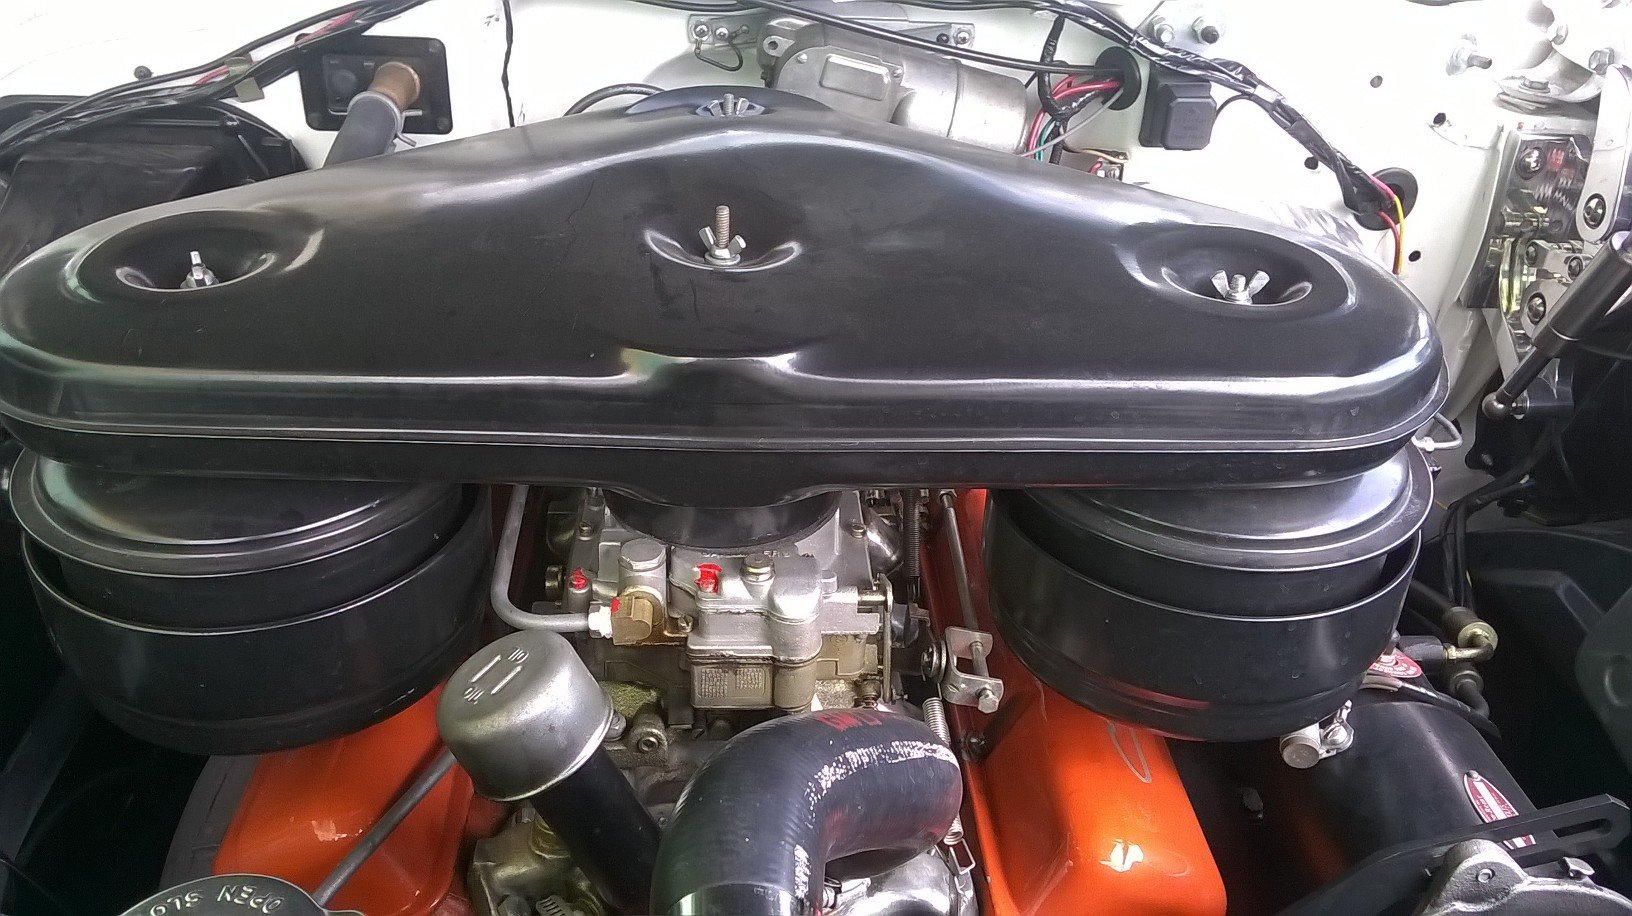 1957 Chevy Bel-Air,dual WCFD Carburetors